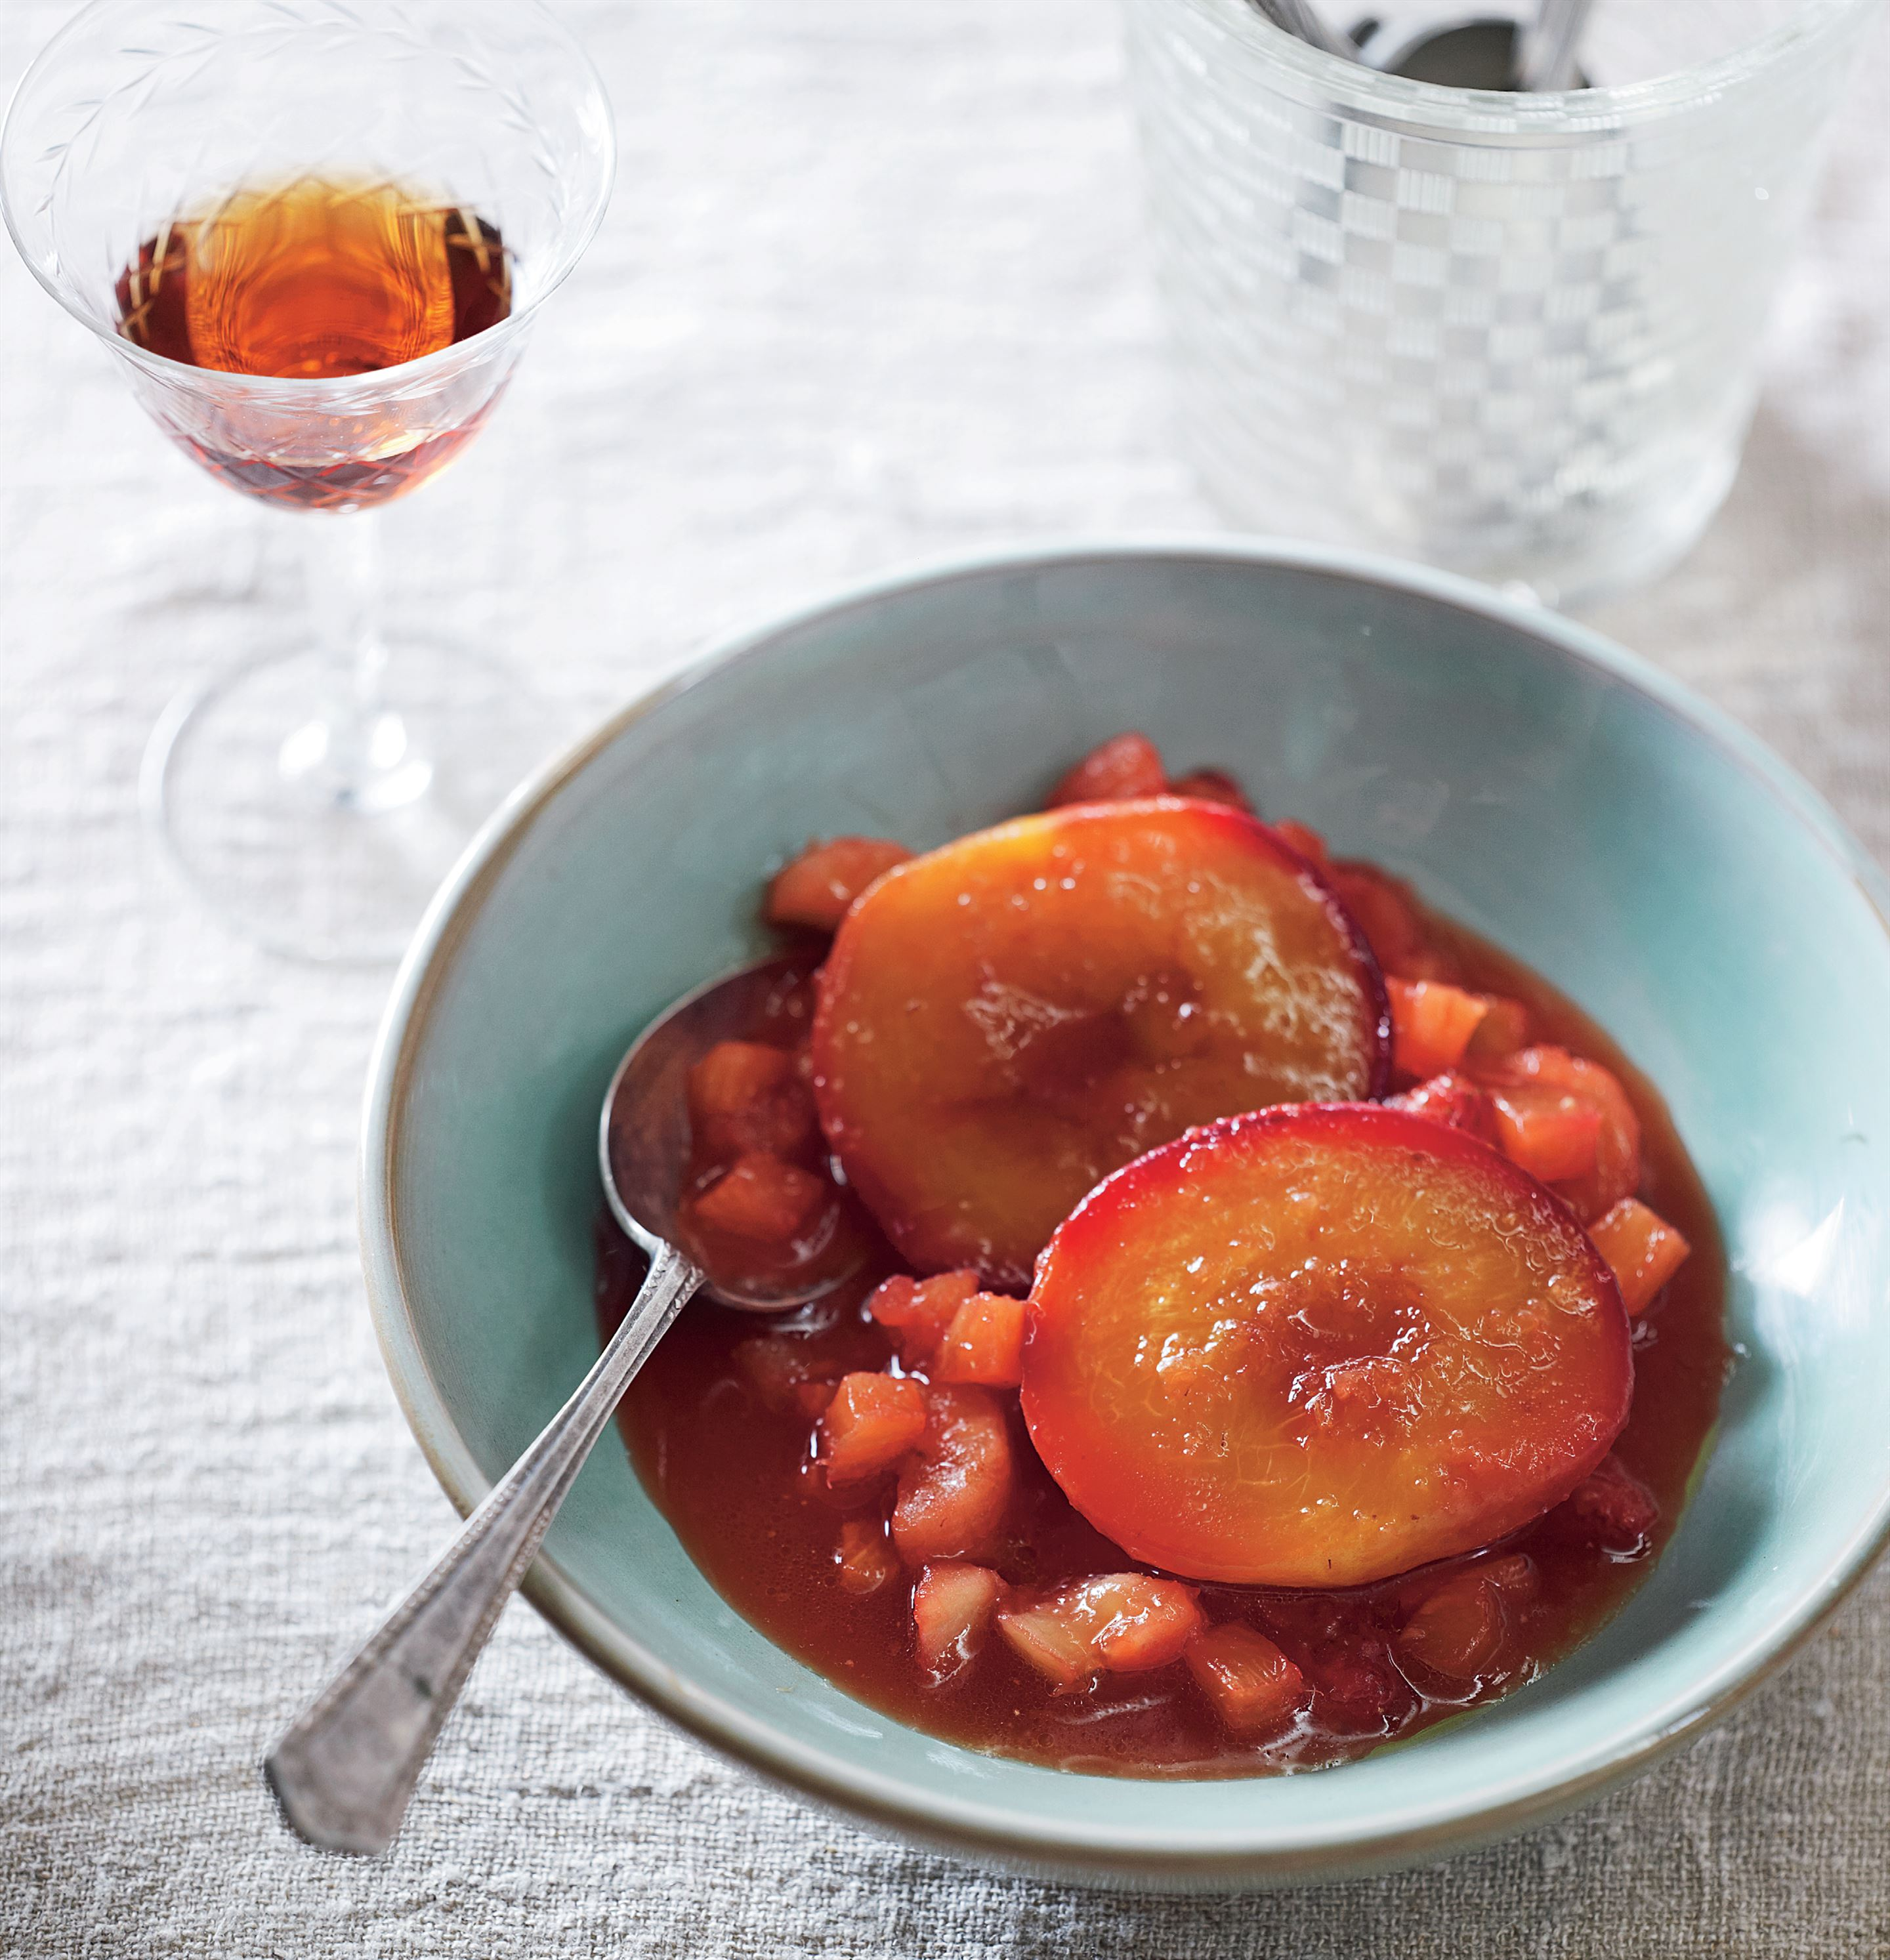 Roast peaches with fruit salsa